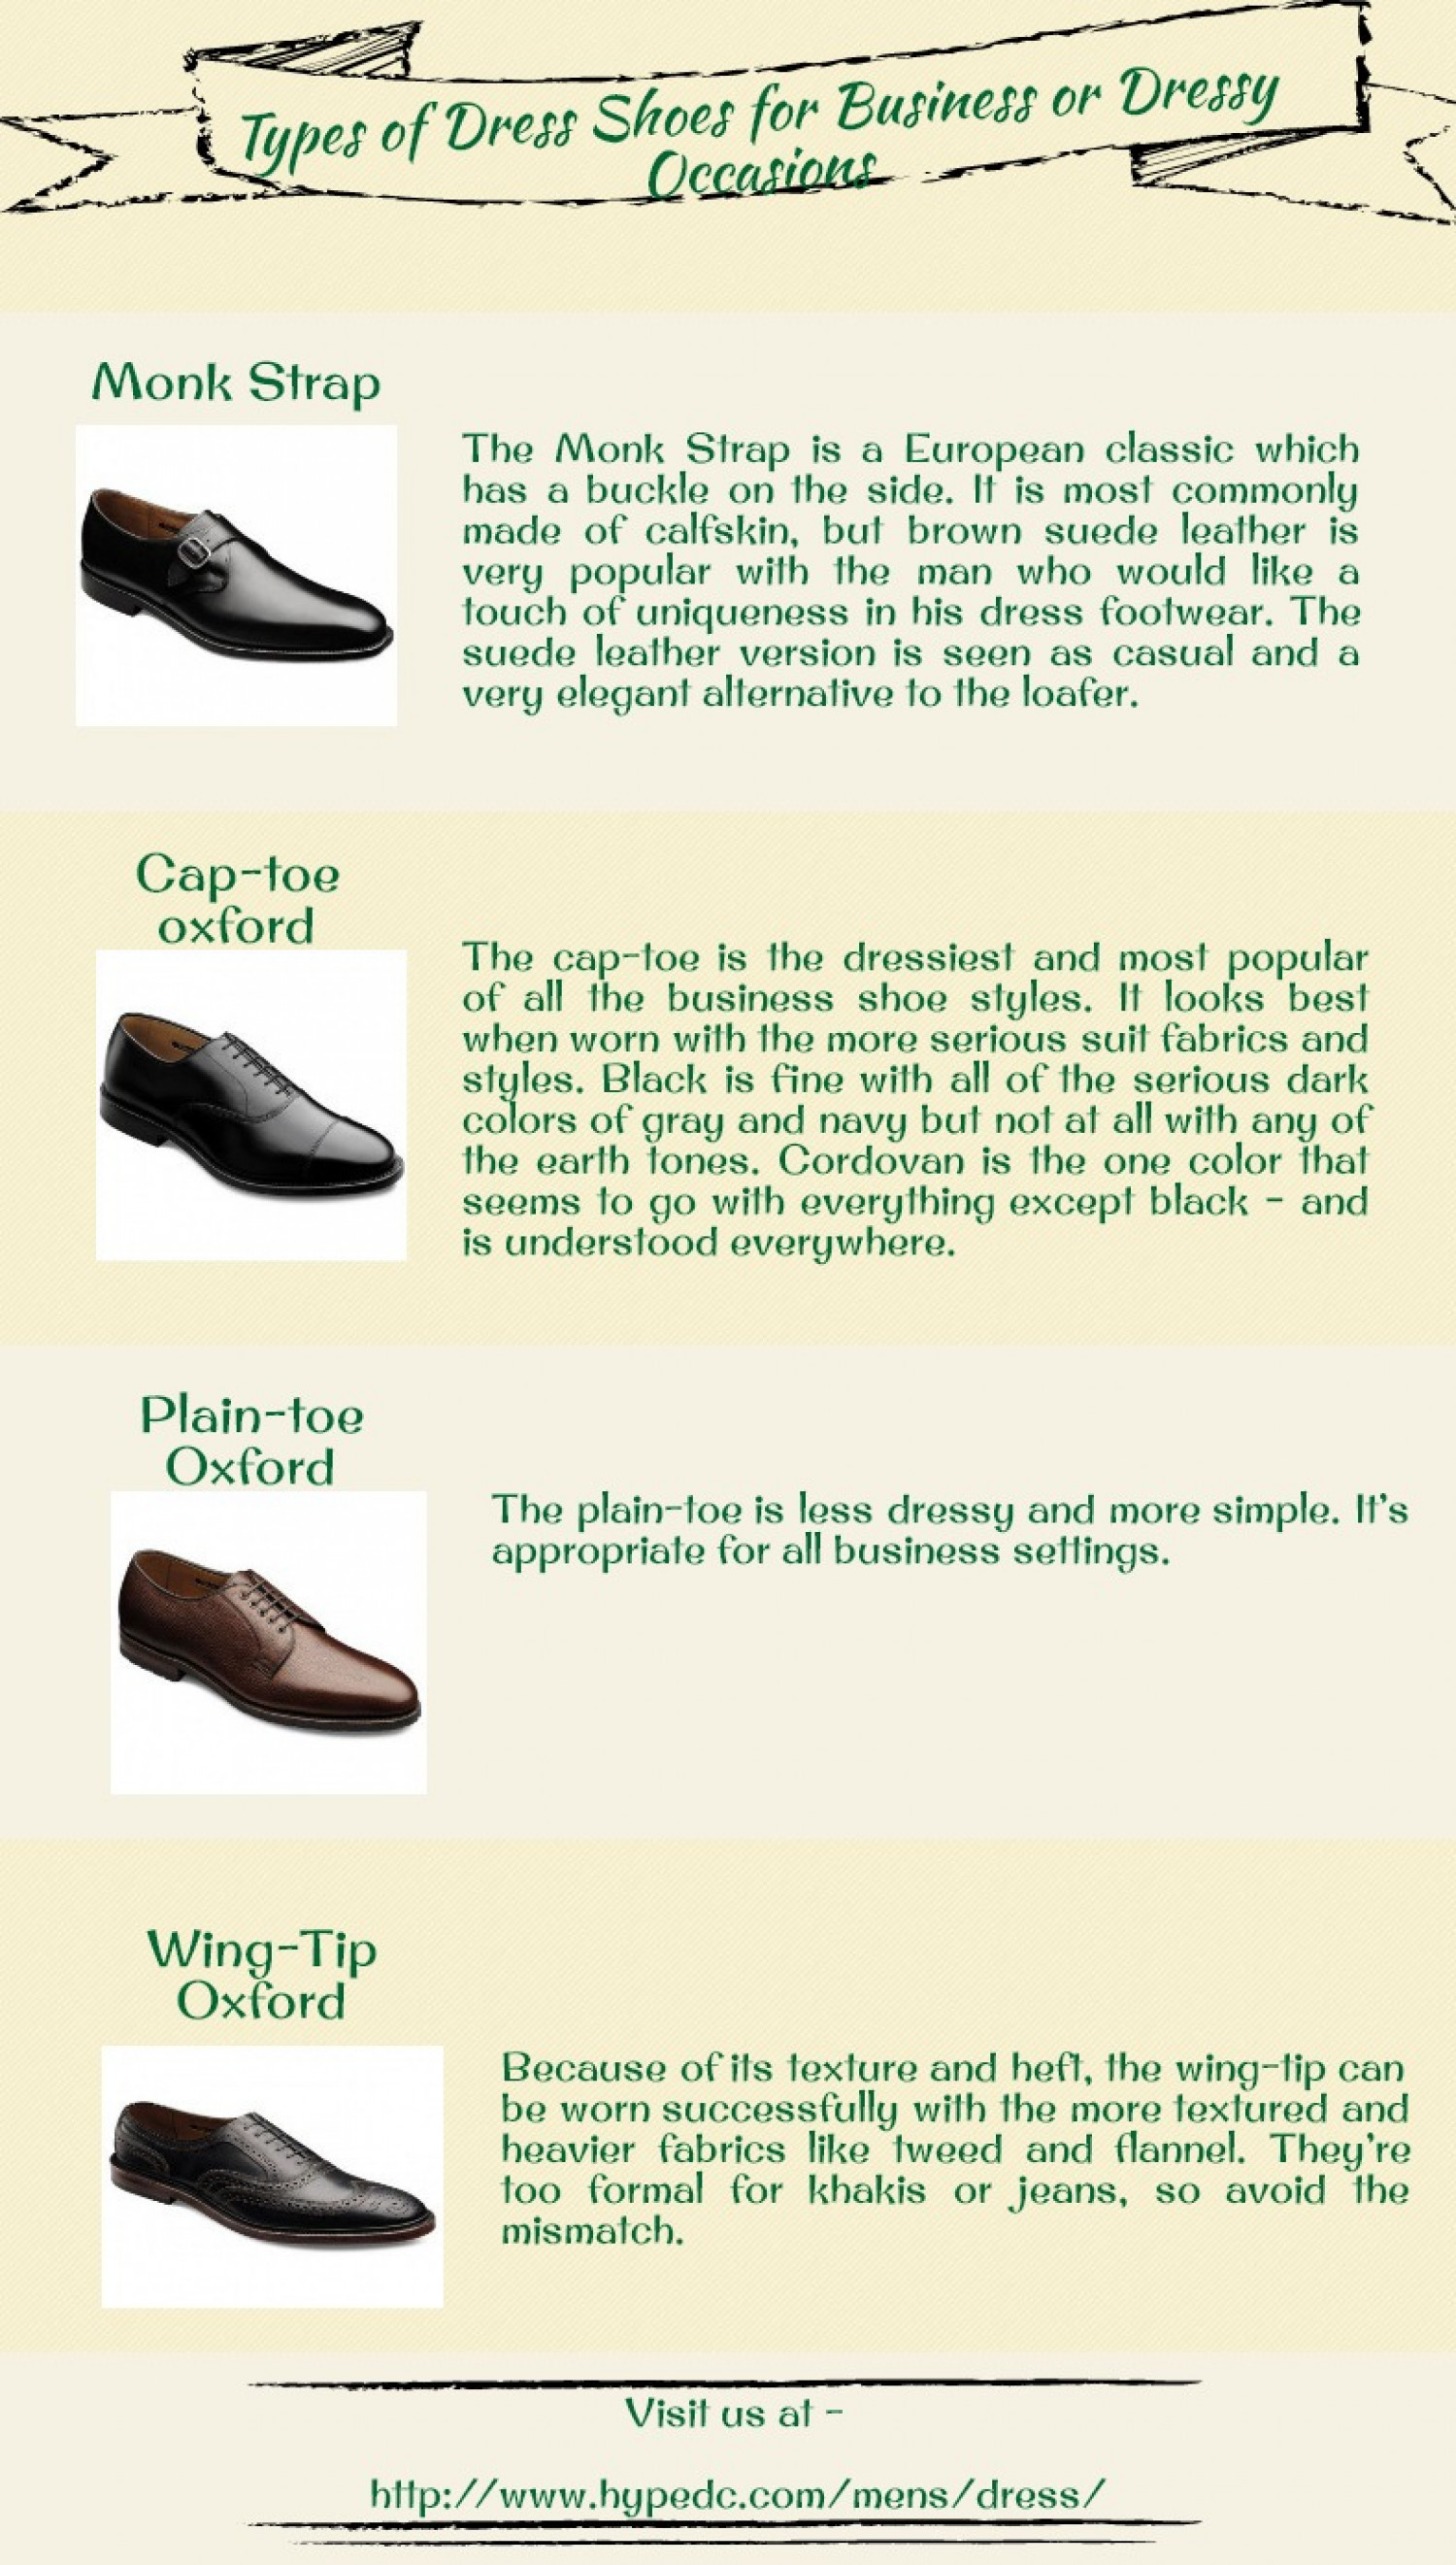 Types of Dress Shoes for Business or Dressy Occasions Infographic